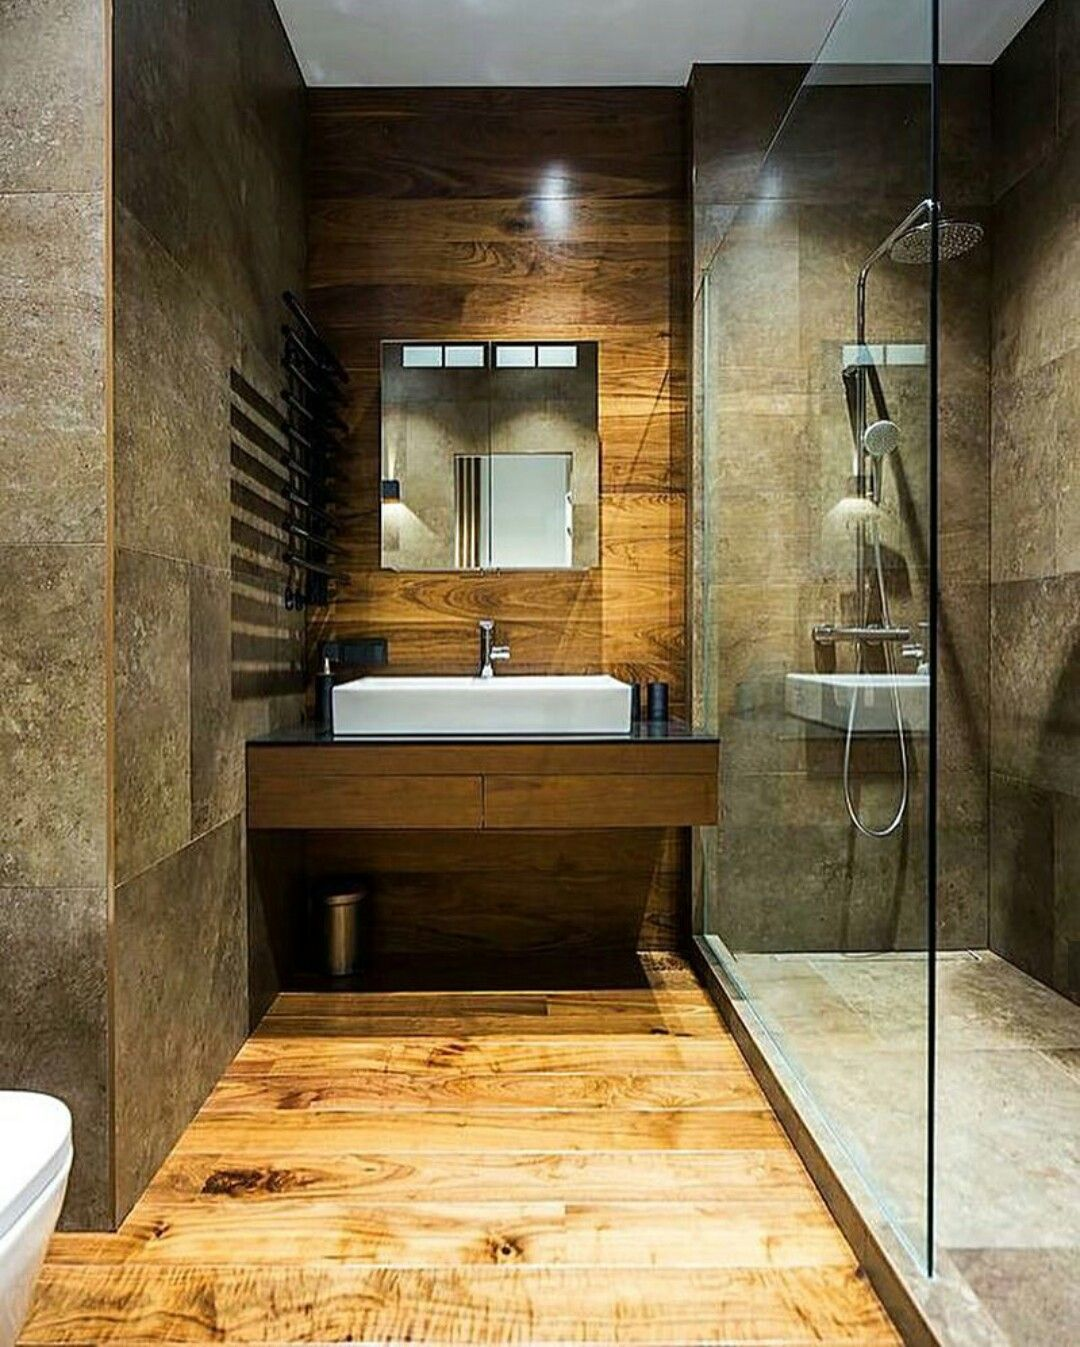 Stone Bathroom Designs Wood And Brown Stone Bathroom Interior Design Bathroom Design